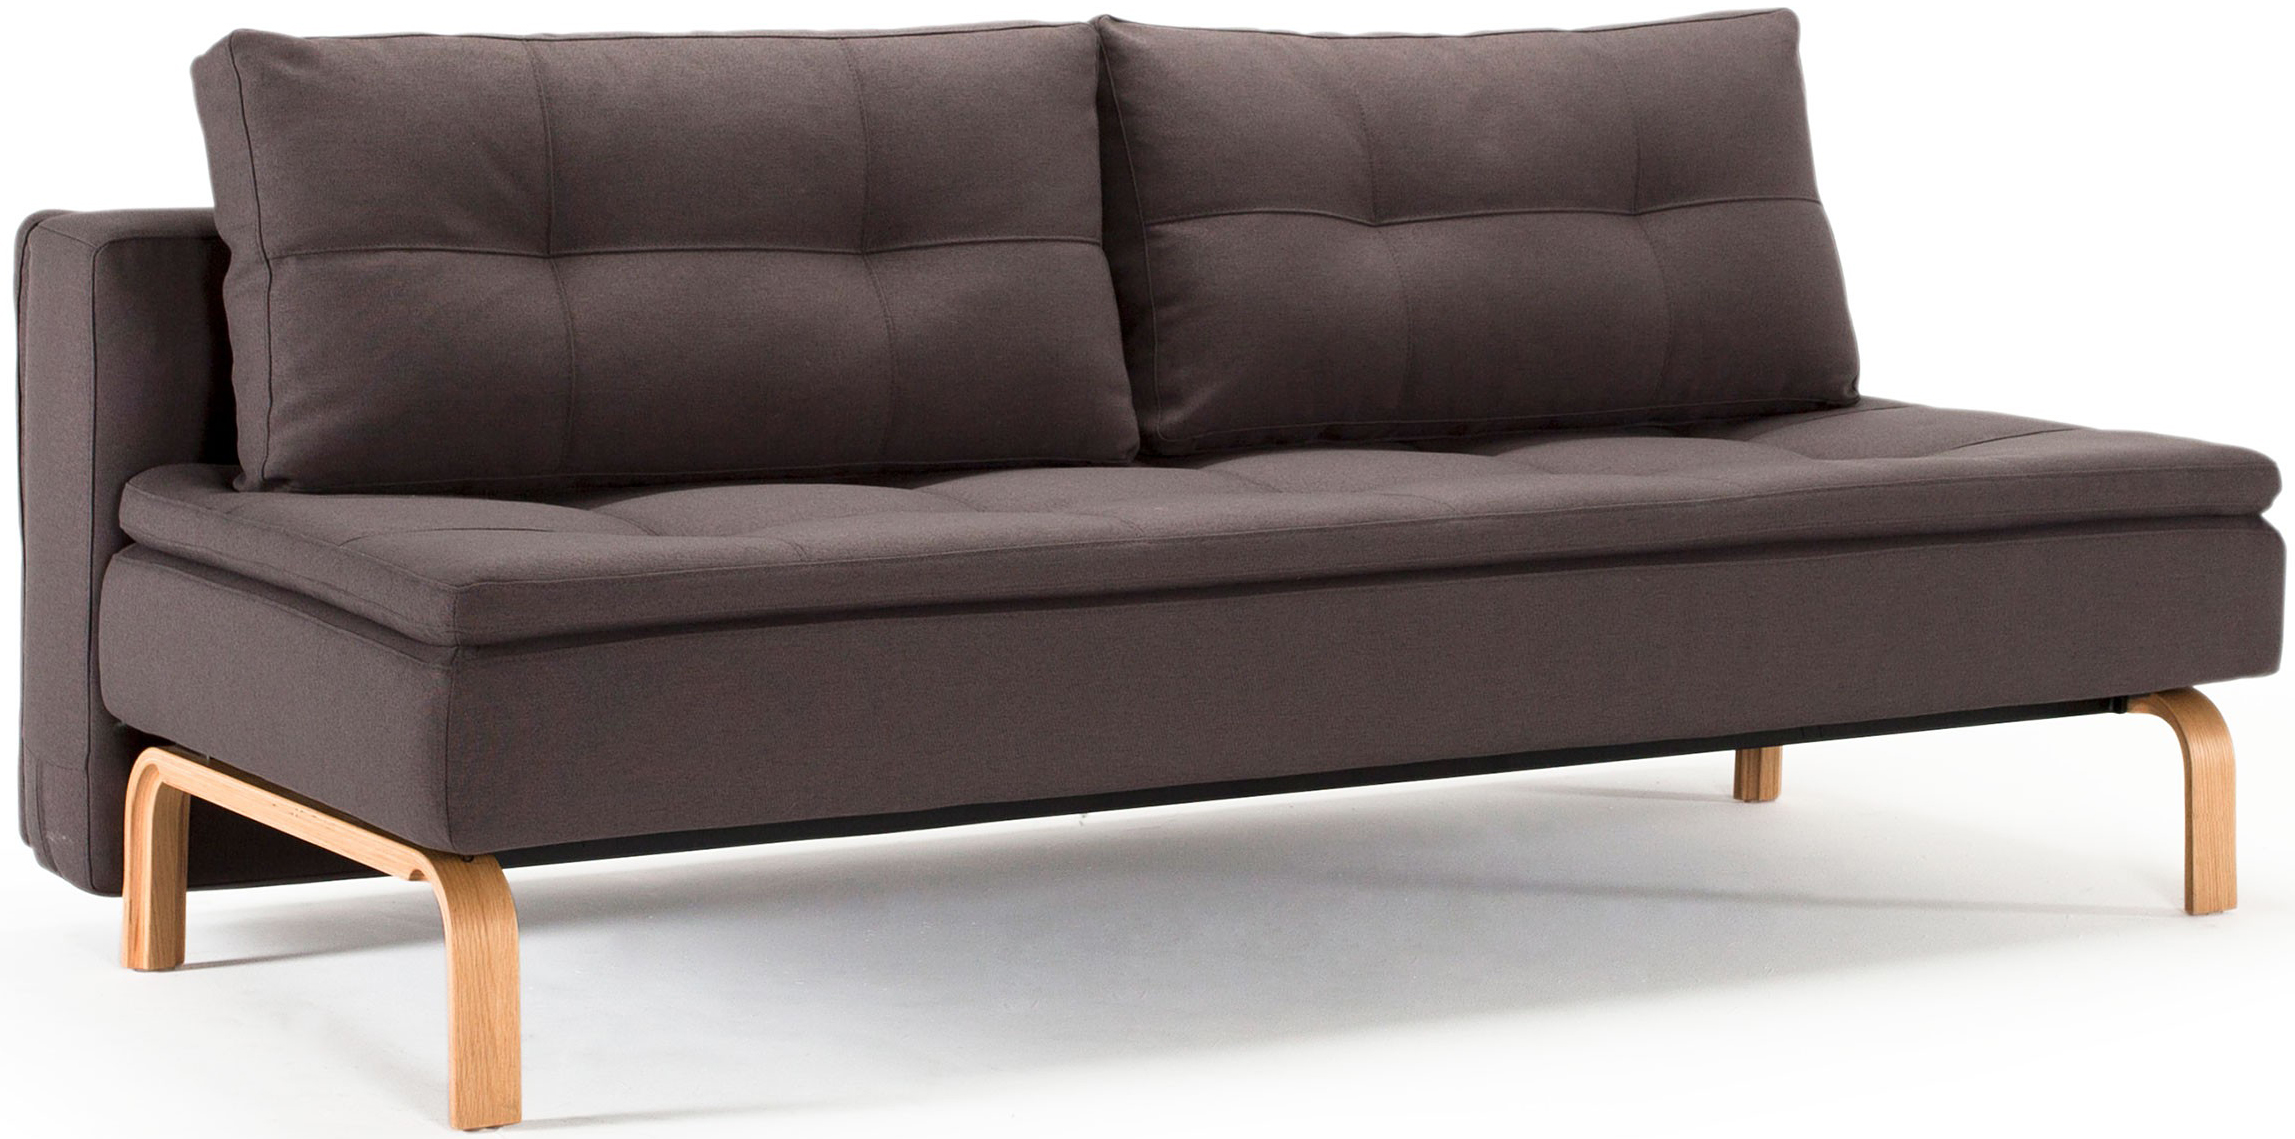 innovation dual sofa oak legs